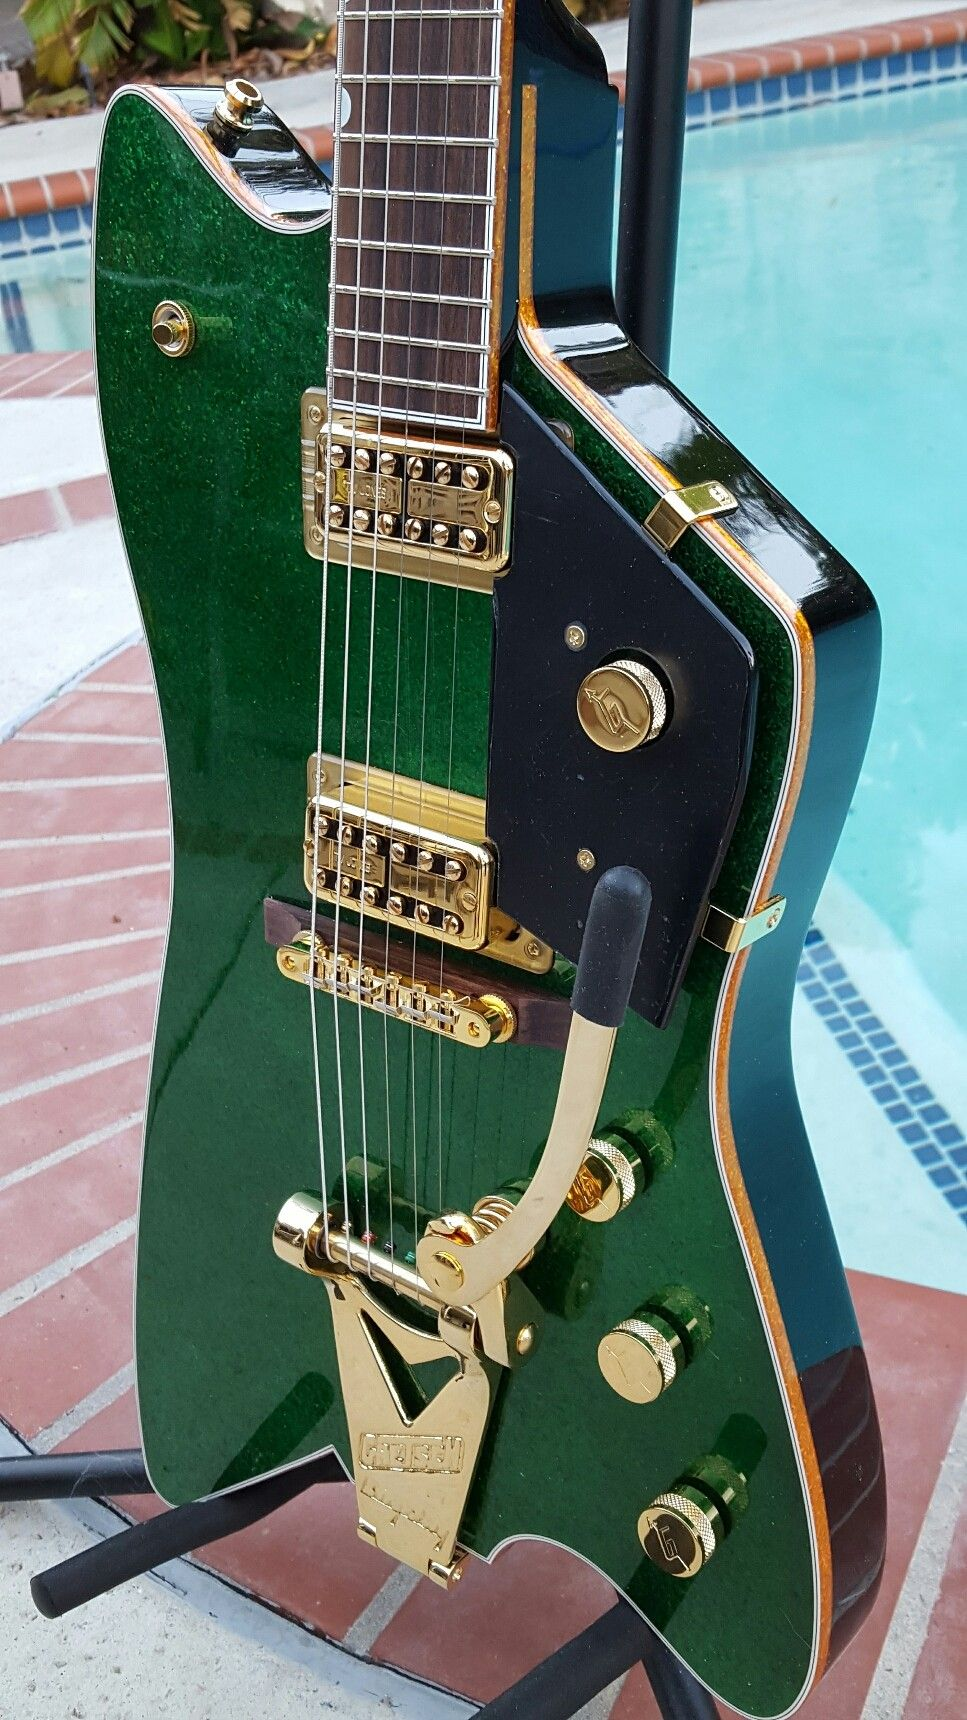 a69f6ee46dd753ff20ad674a90a86e30 the historic gretsch g 6199 billy bo thunderbird designed by bo